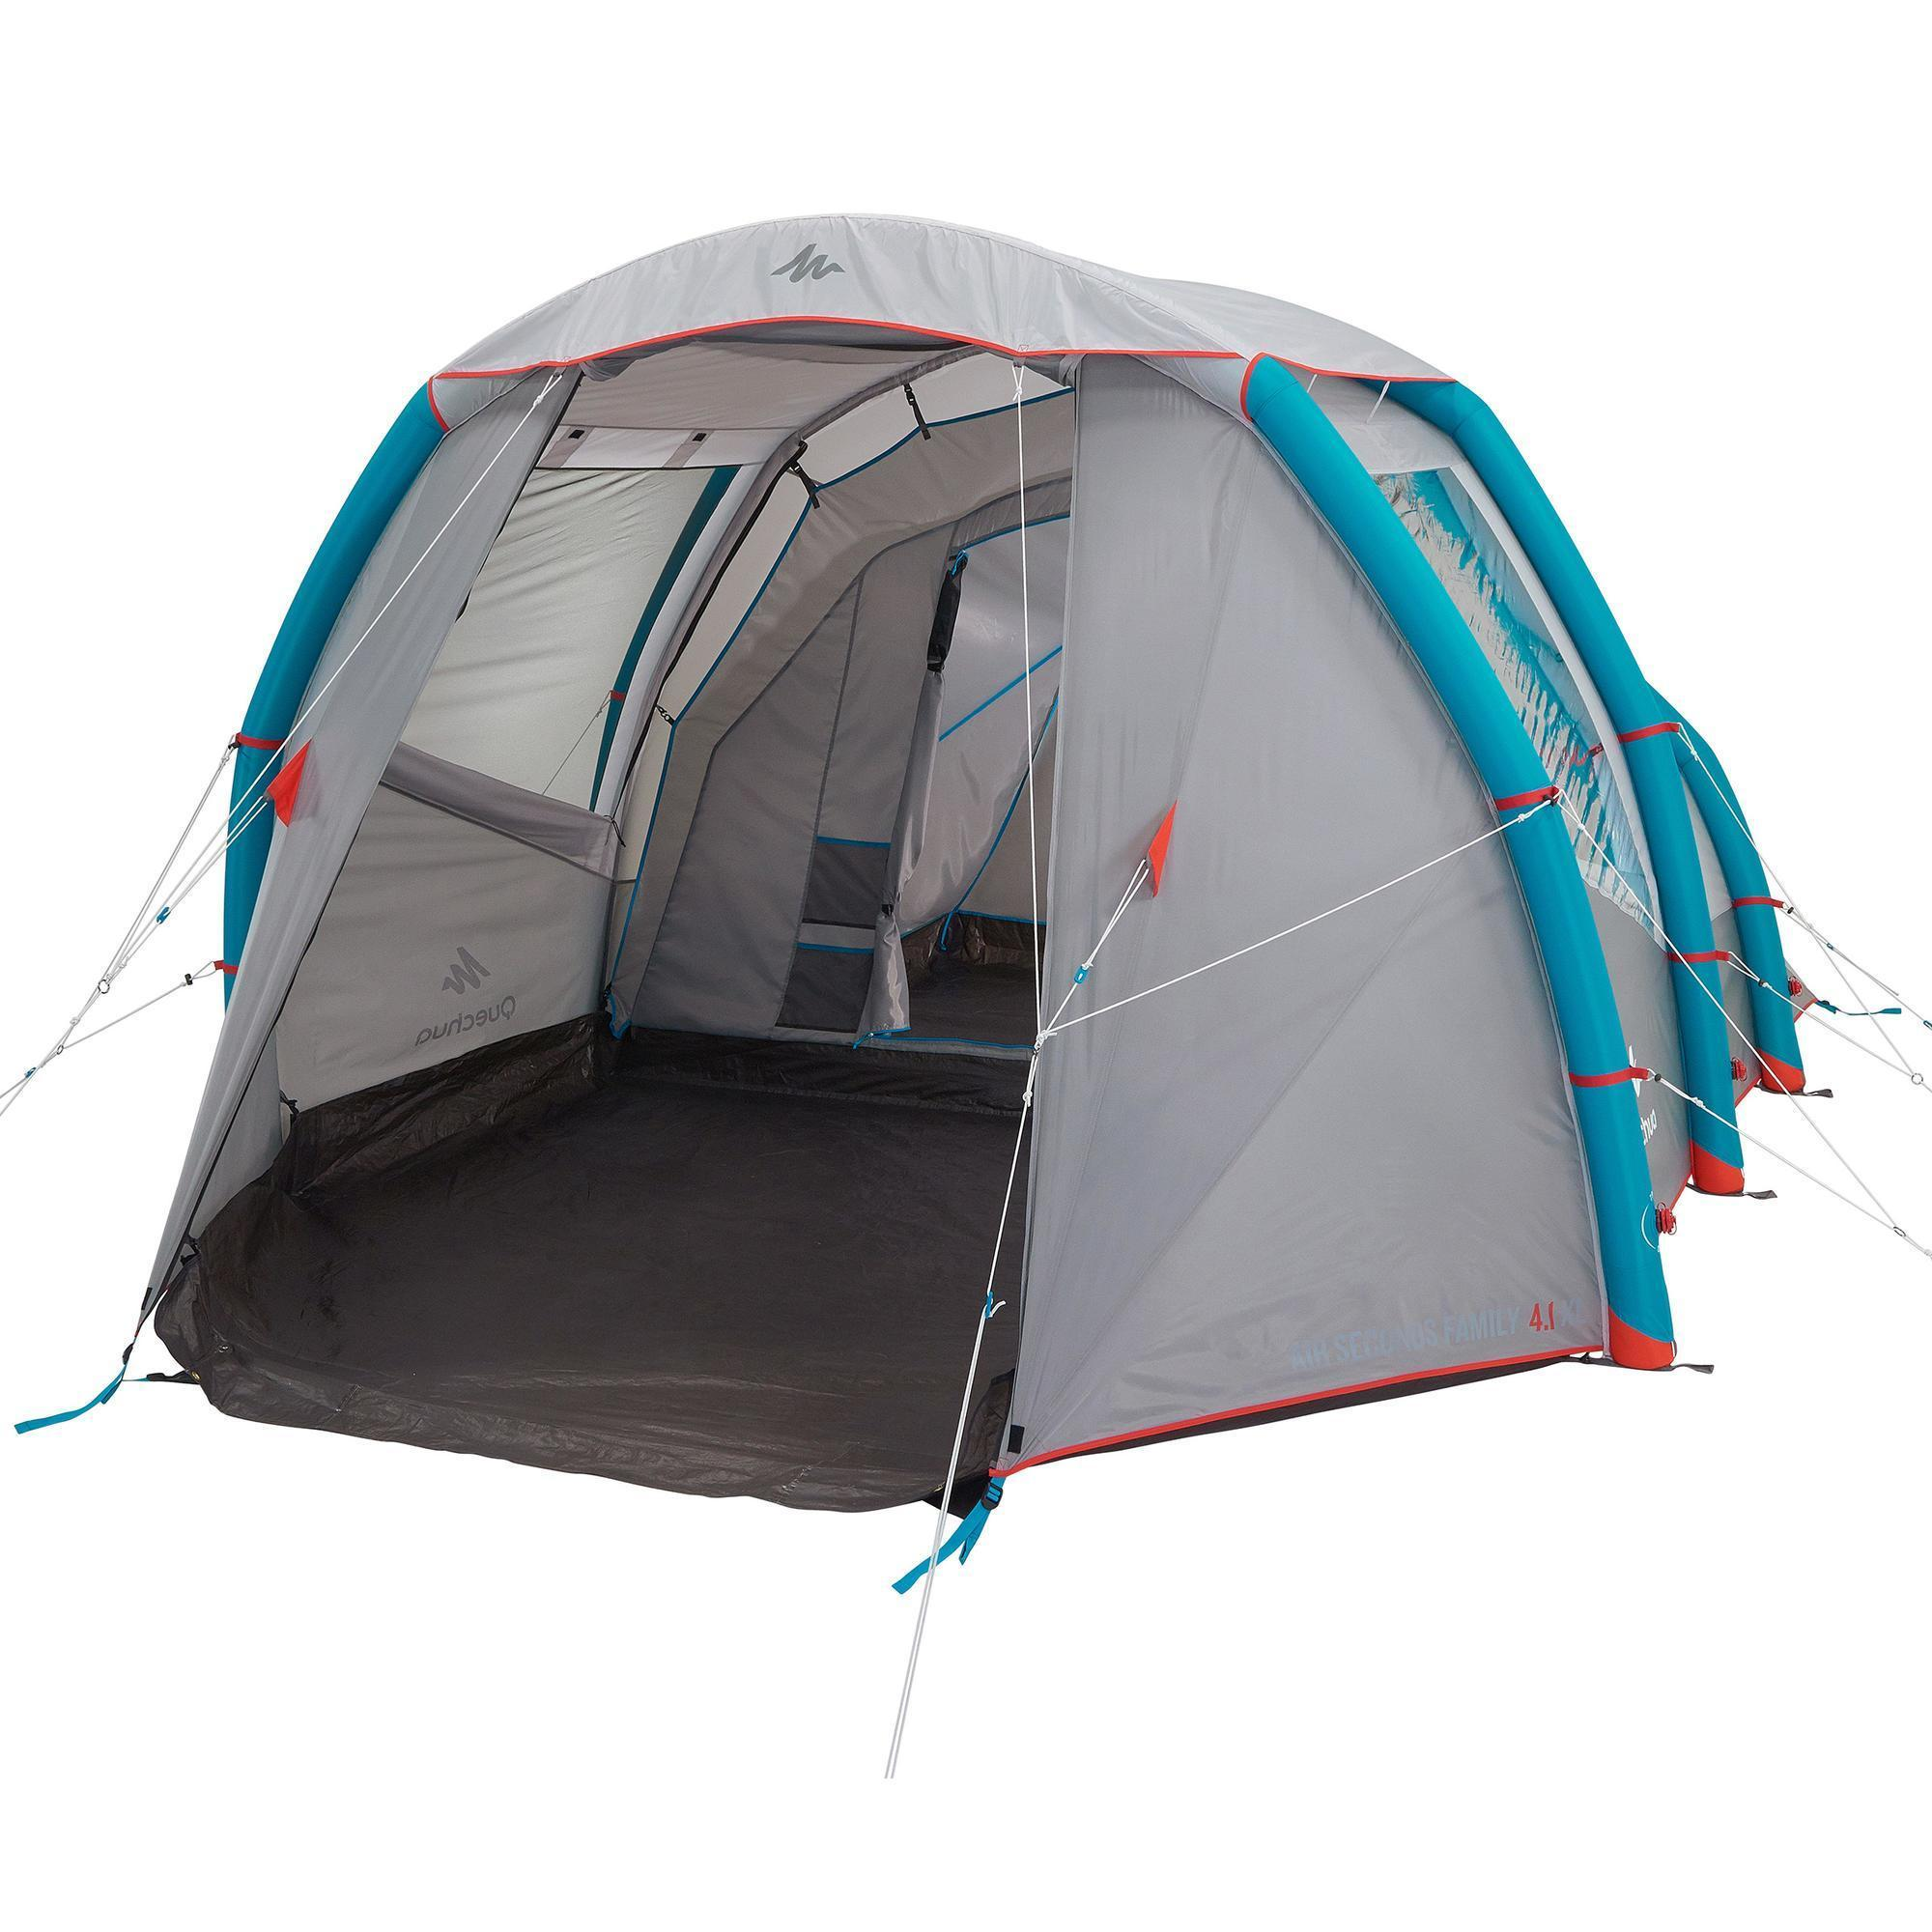 sc 1 st  Quechua & Air Seconds 4.1 xl Family Camping Tent | 4-Person | Quechua